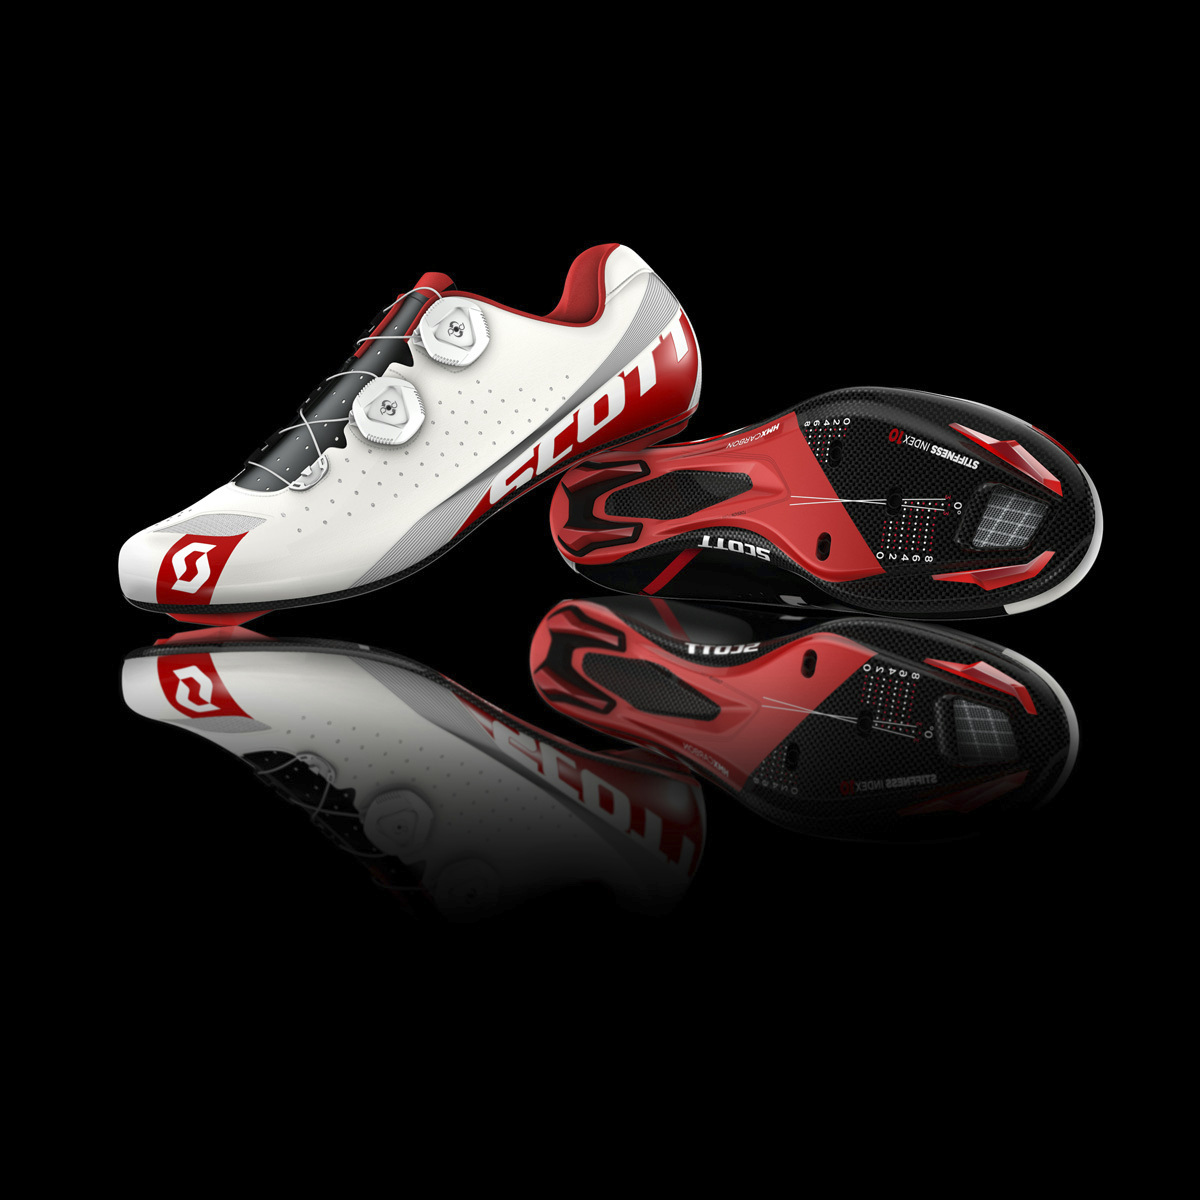 Footwear-Eyewear Athletes